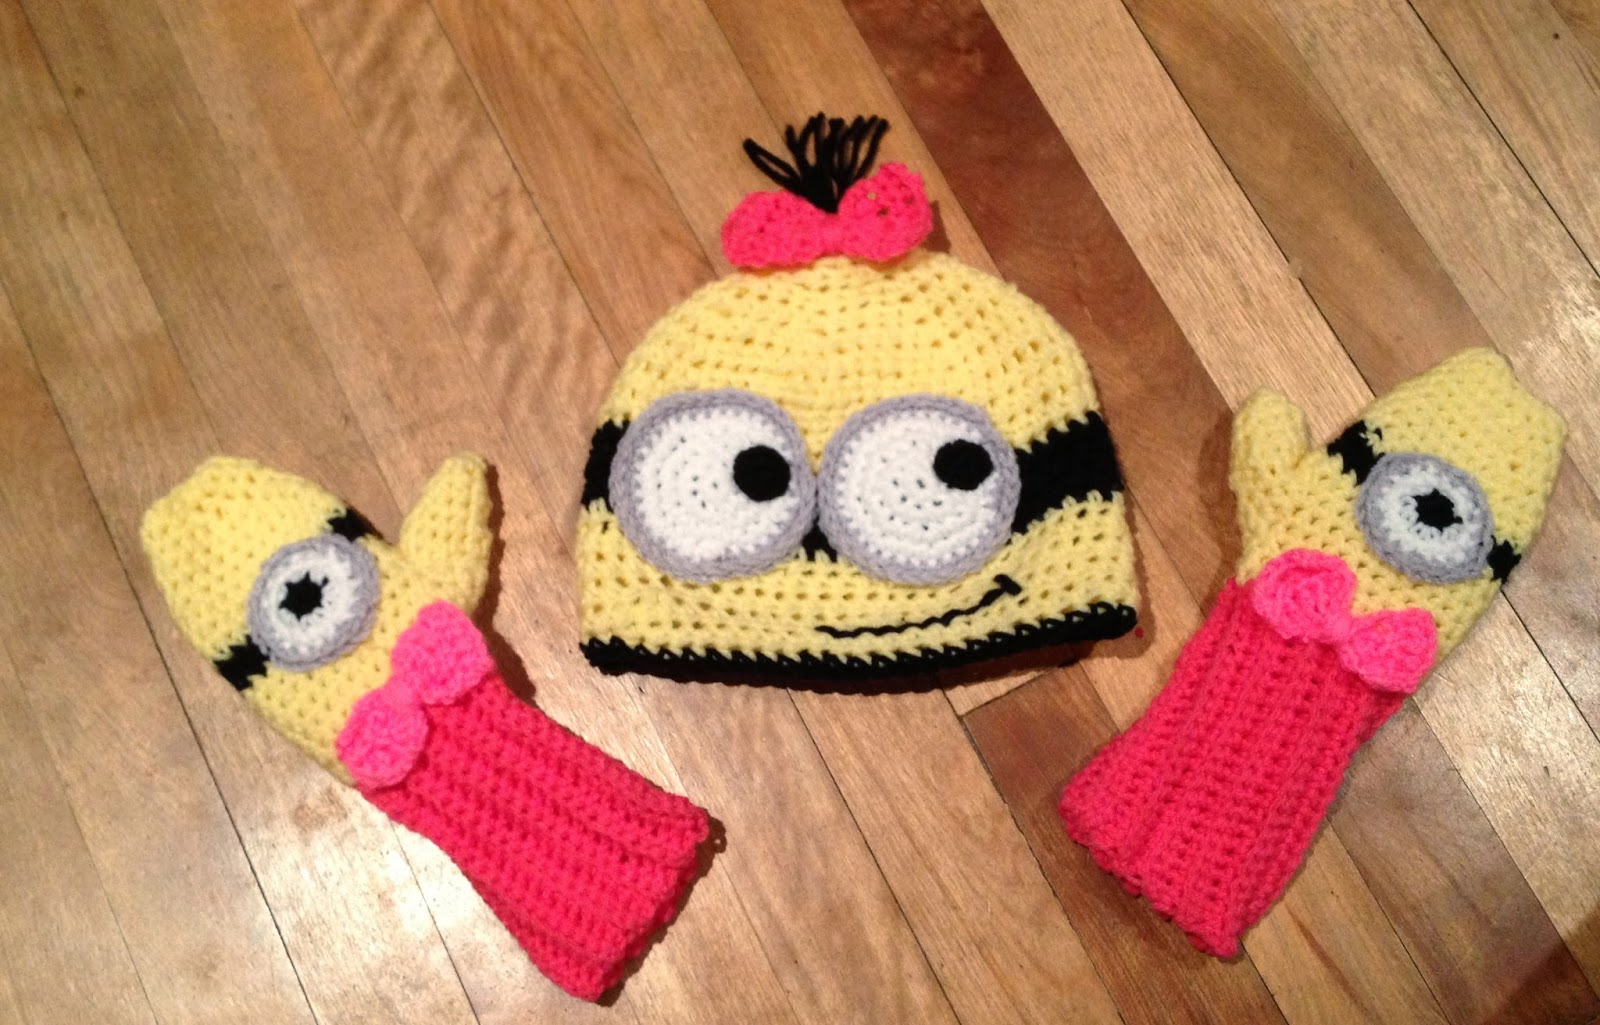 Crochet Patterns Minions : Free Crochet Connection: MINION HAT AND MITTENS SET